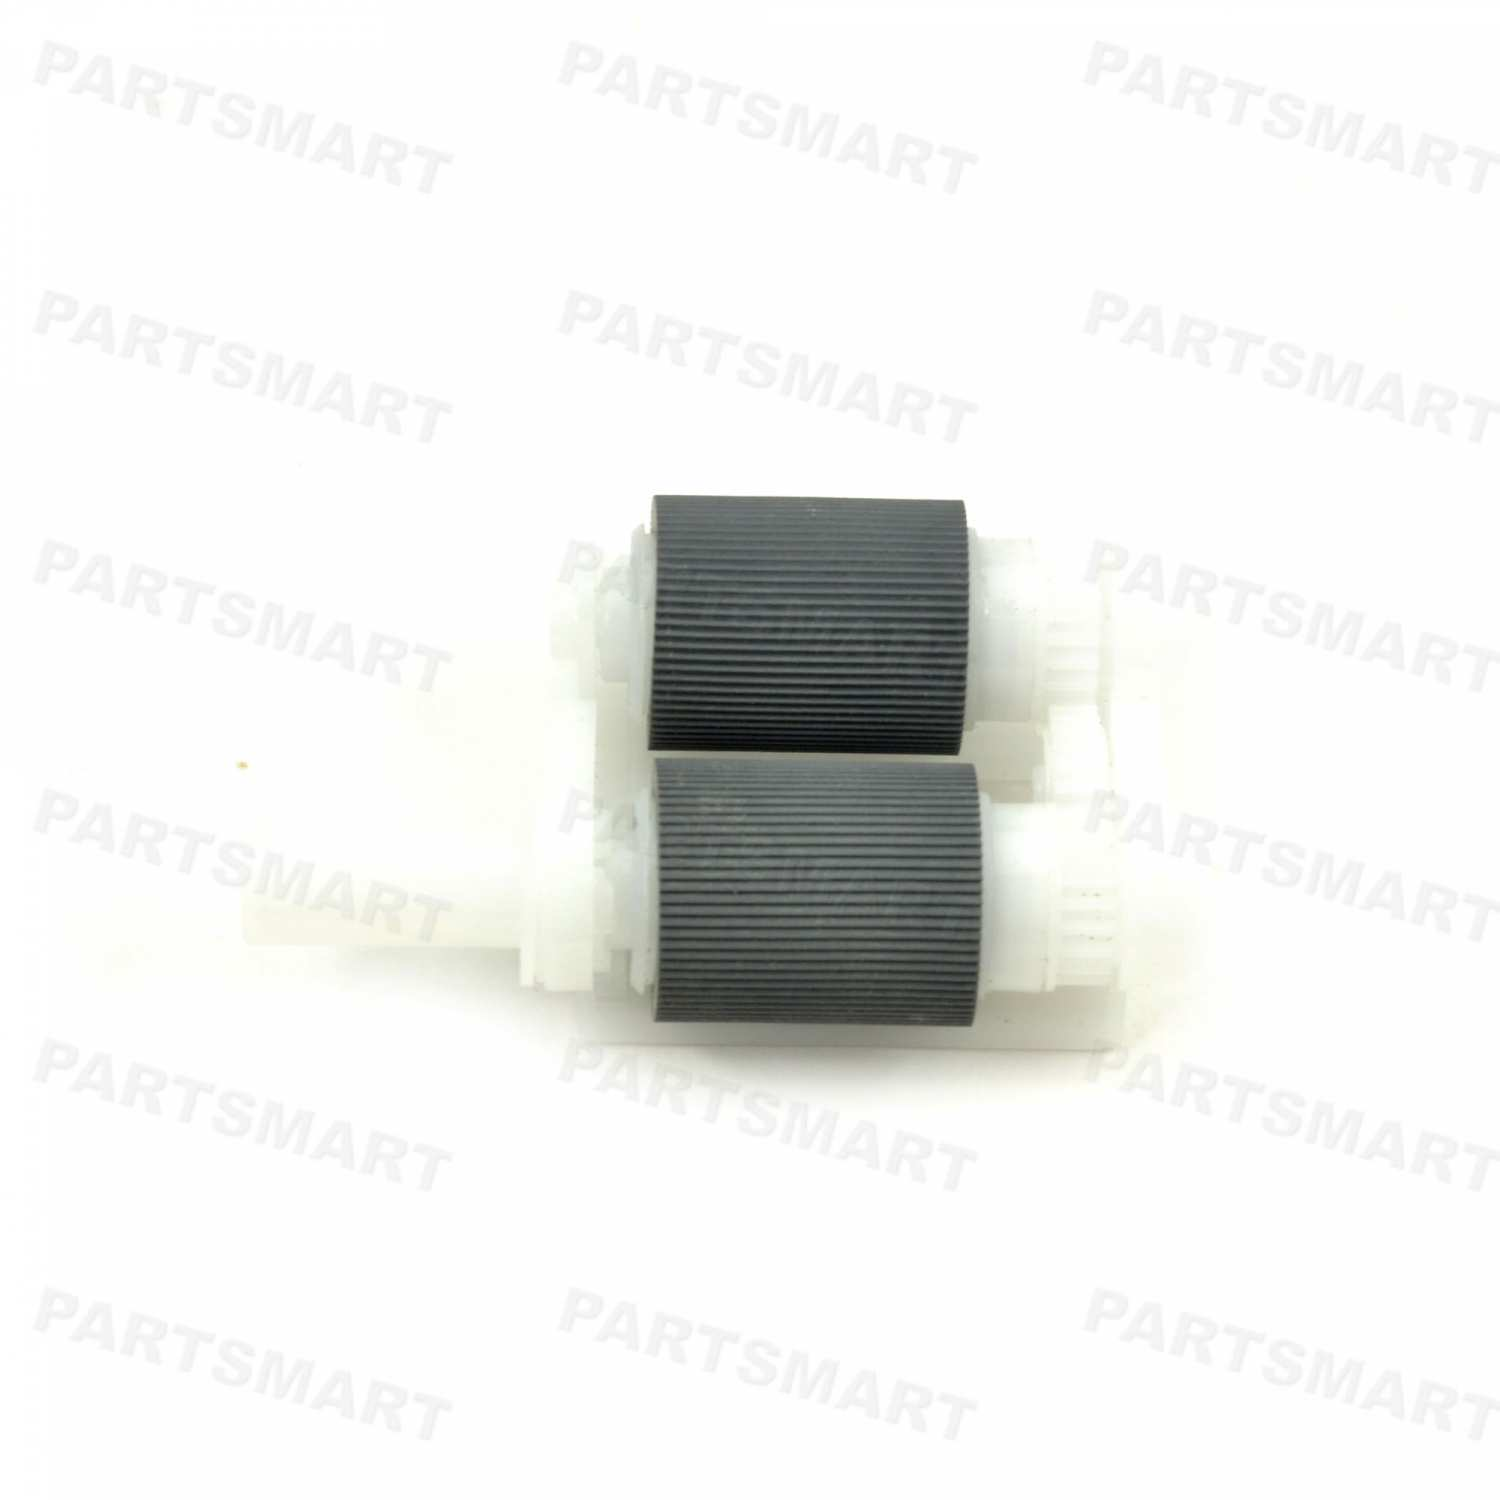 LY2093001 Pickup Roller Assy for Brother HL-2240